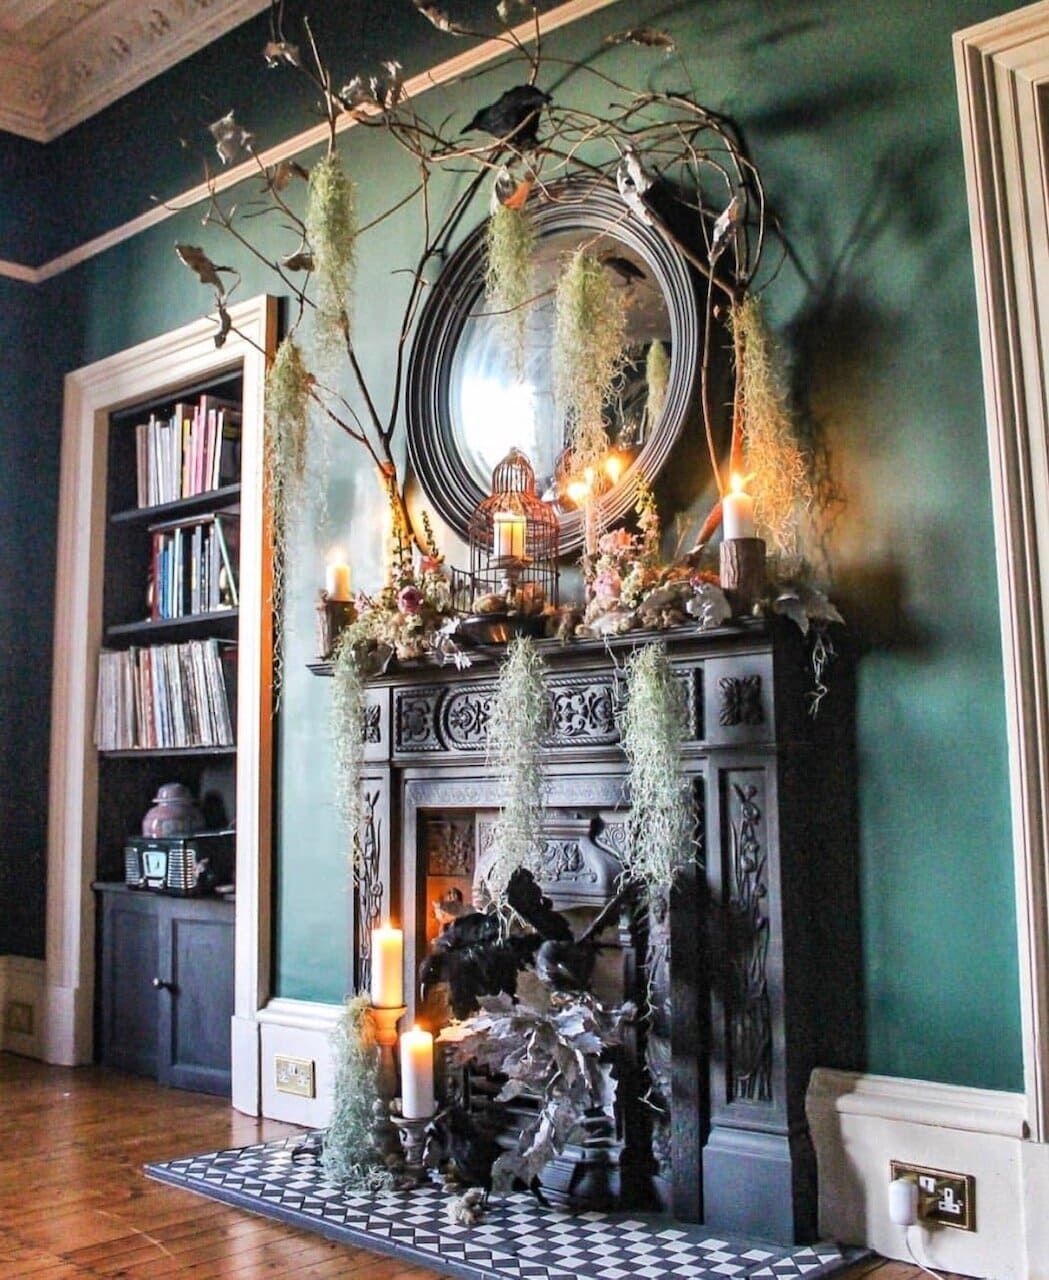 A little fireplace changeover, ready for Halloween night. Instagram  @the_1882_house